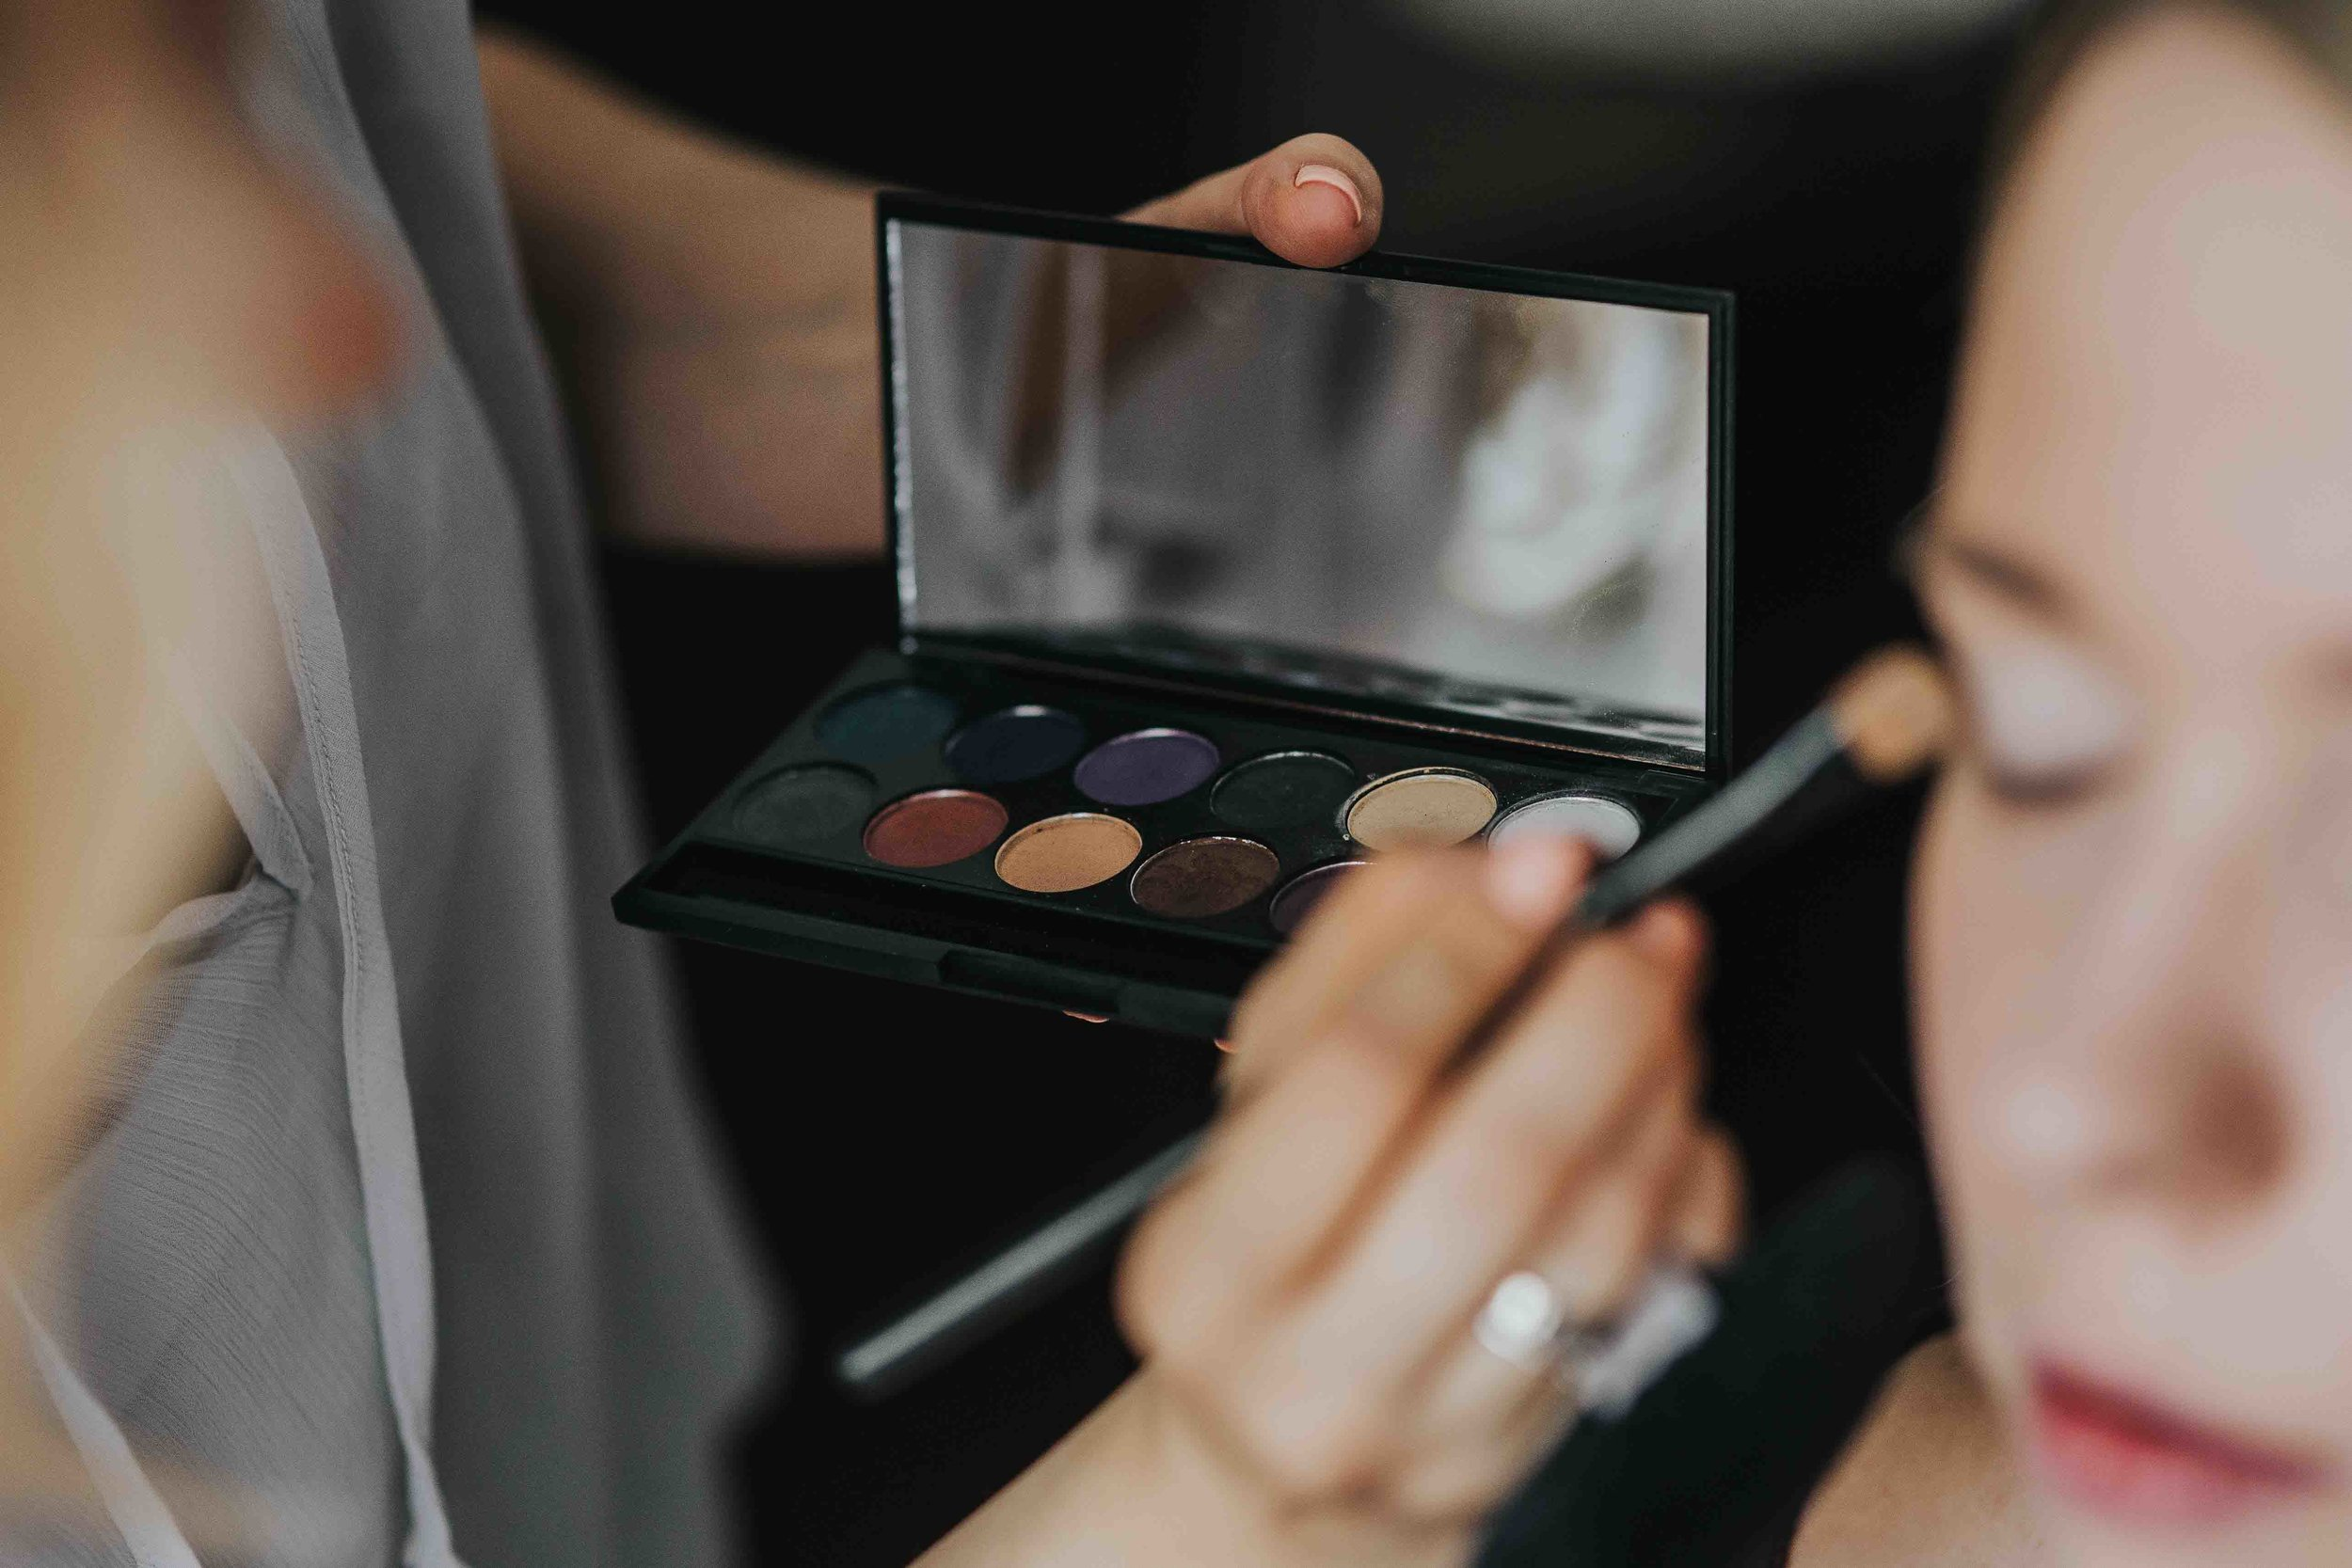 The Feel Good Makeover Day - An exciting all day experience including colour and body shape analysis, personal shop, facial, hair styling, make-up and a photo-shoot experience to capture your beauty.